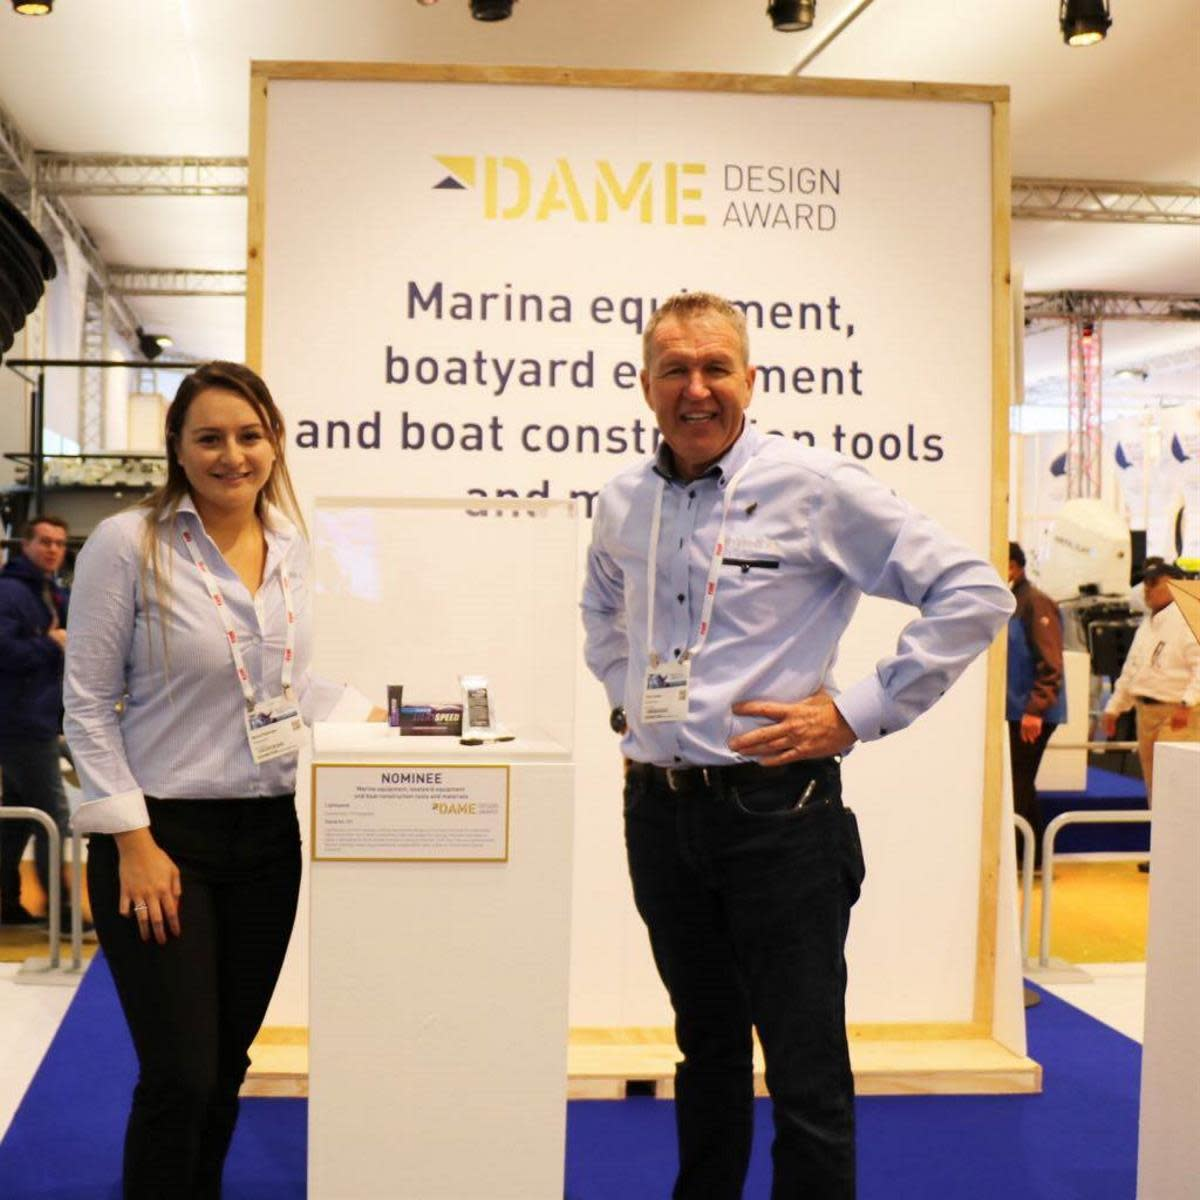 General Manager Nona Pederson (left) and Managing Director Clint Jones of Oceanmax at the DAME awards in Amsterdam.